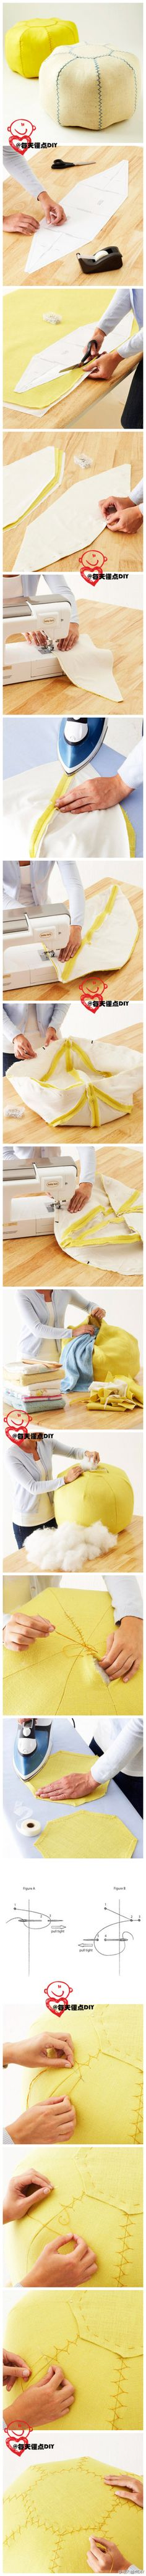 pouf, this is how you do it!!! Ok cause I was thinking putting a mass ton of fluff would be EXPENSIVE might as well just buy one.